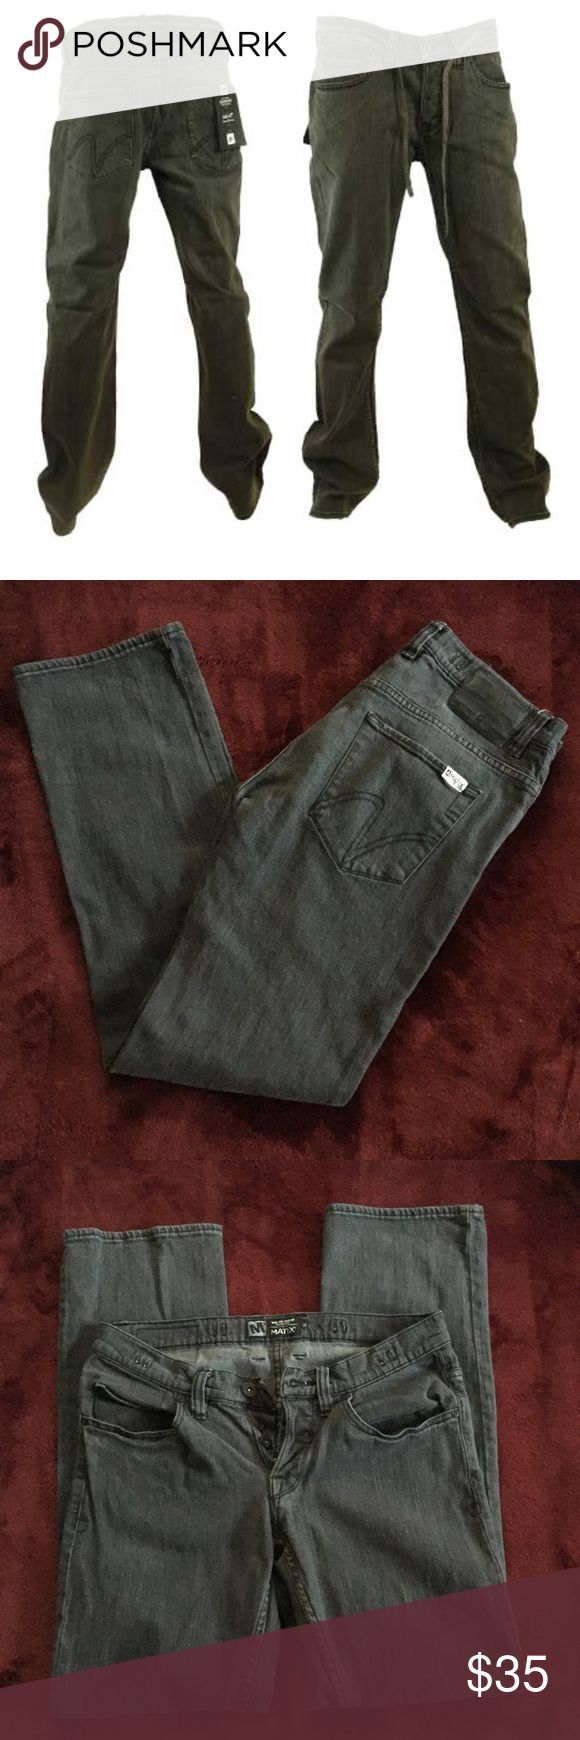 "Mike Mo Capaldi by Matix 30 Skater Jeans Charcoal Mike Mo Capaldi by Matix Skater Jeans  Size 30 Charcoal  Inseam Approx 30"" Button Fly  Does not come with original cord Matix Jeans Straight"